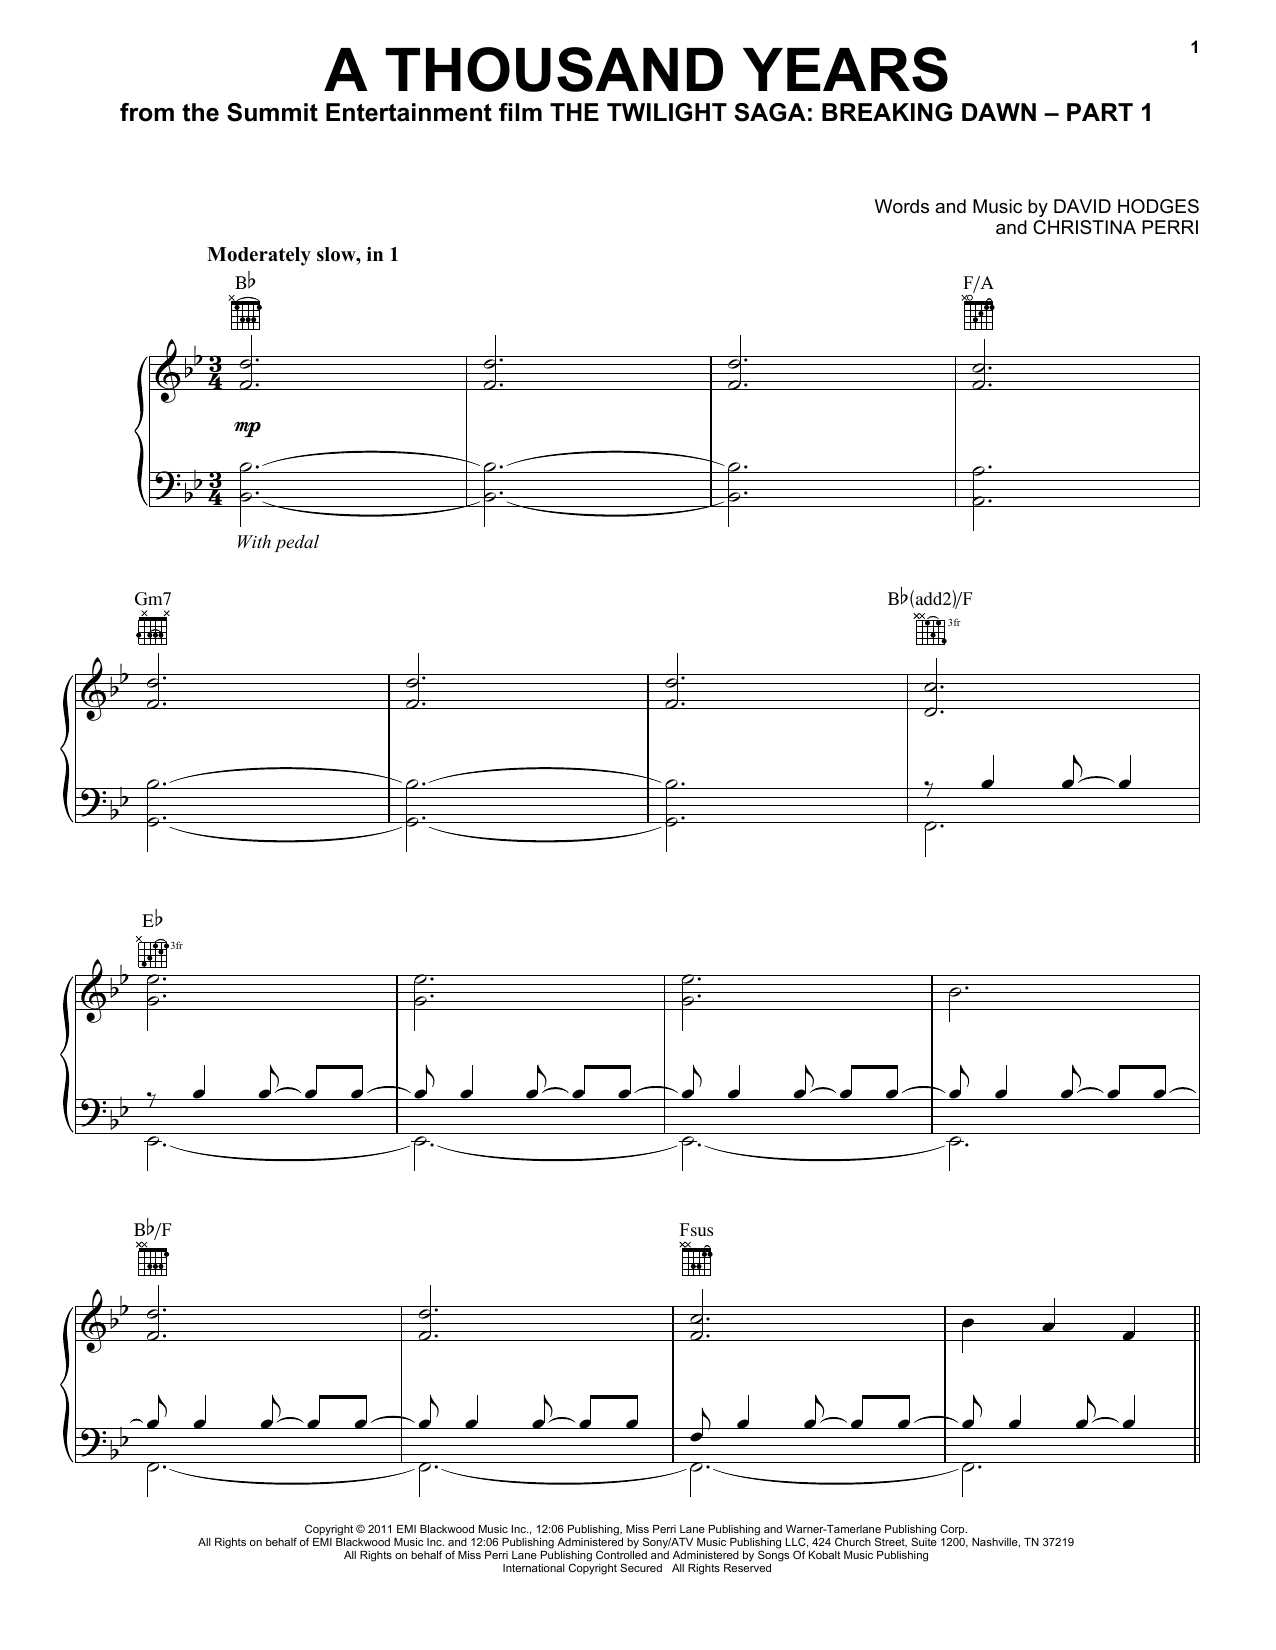 A Thousand Years sheet music by Christina Perri (Piano, Vocal u0026 Guitar (Right-Hand Melody) u2013 88061)